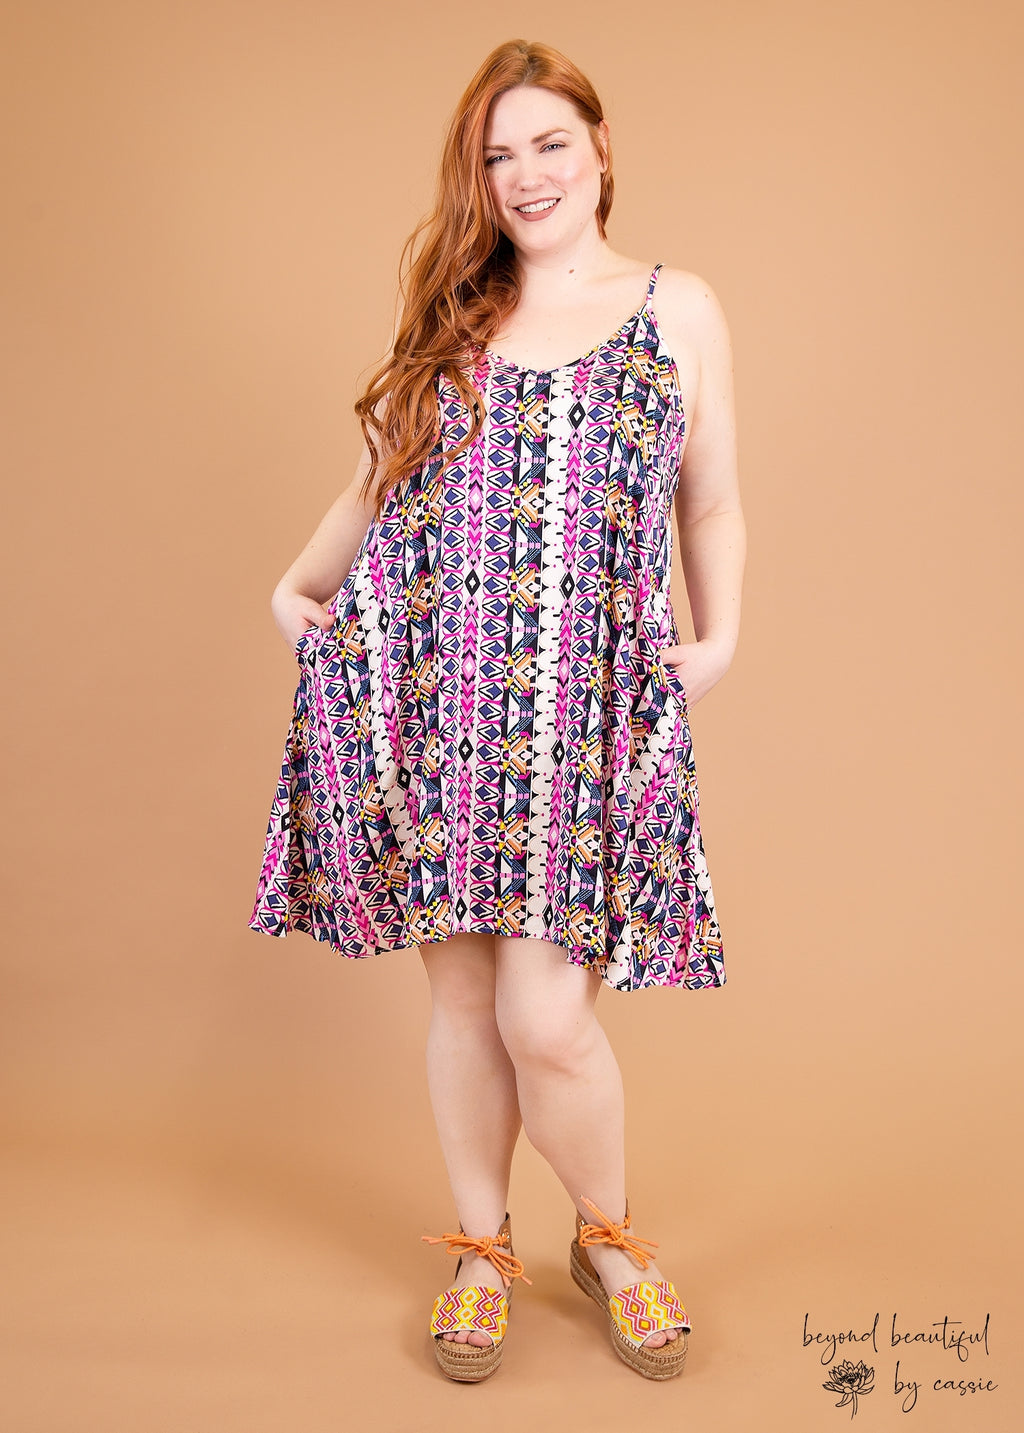 Paisley Raye Lily dress  with Beyond Beautiful by Cassie, shop now at http://beyondbeautifulbycassie.com/